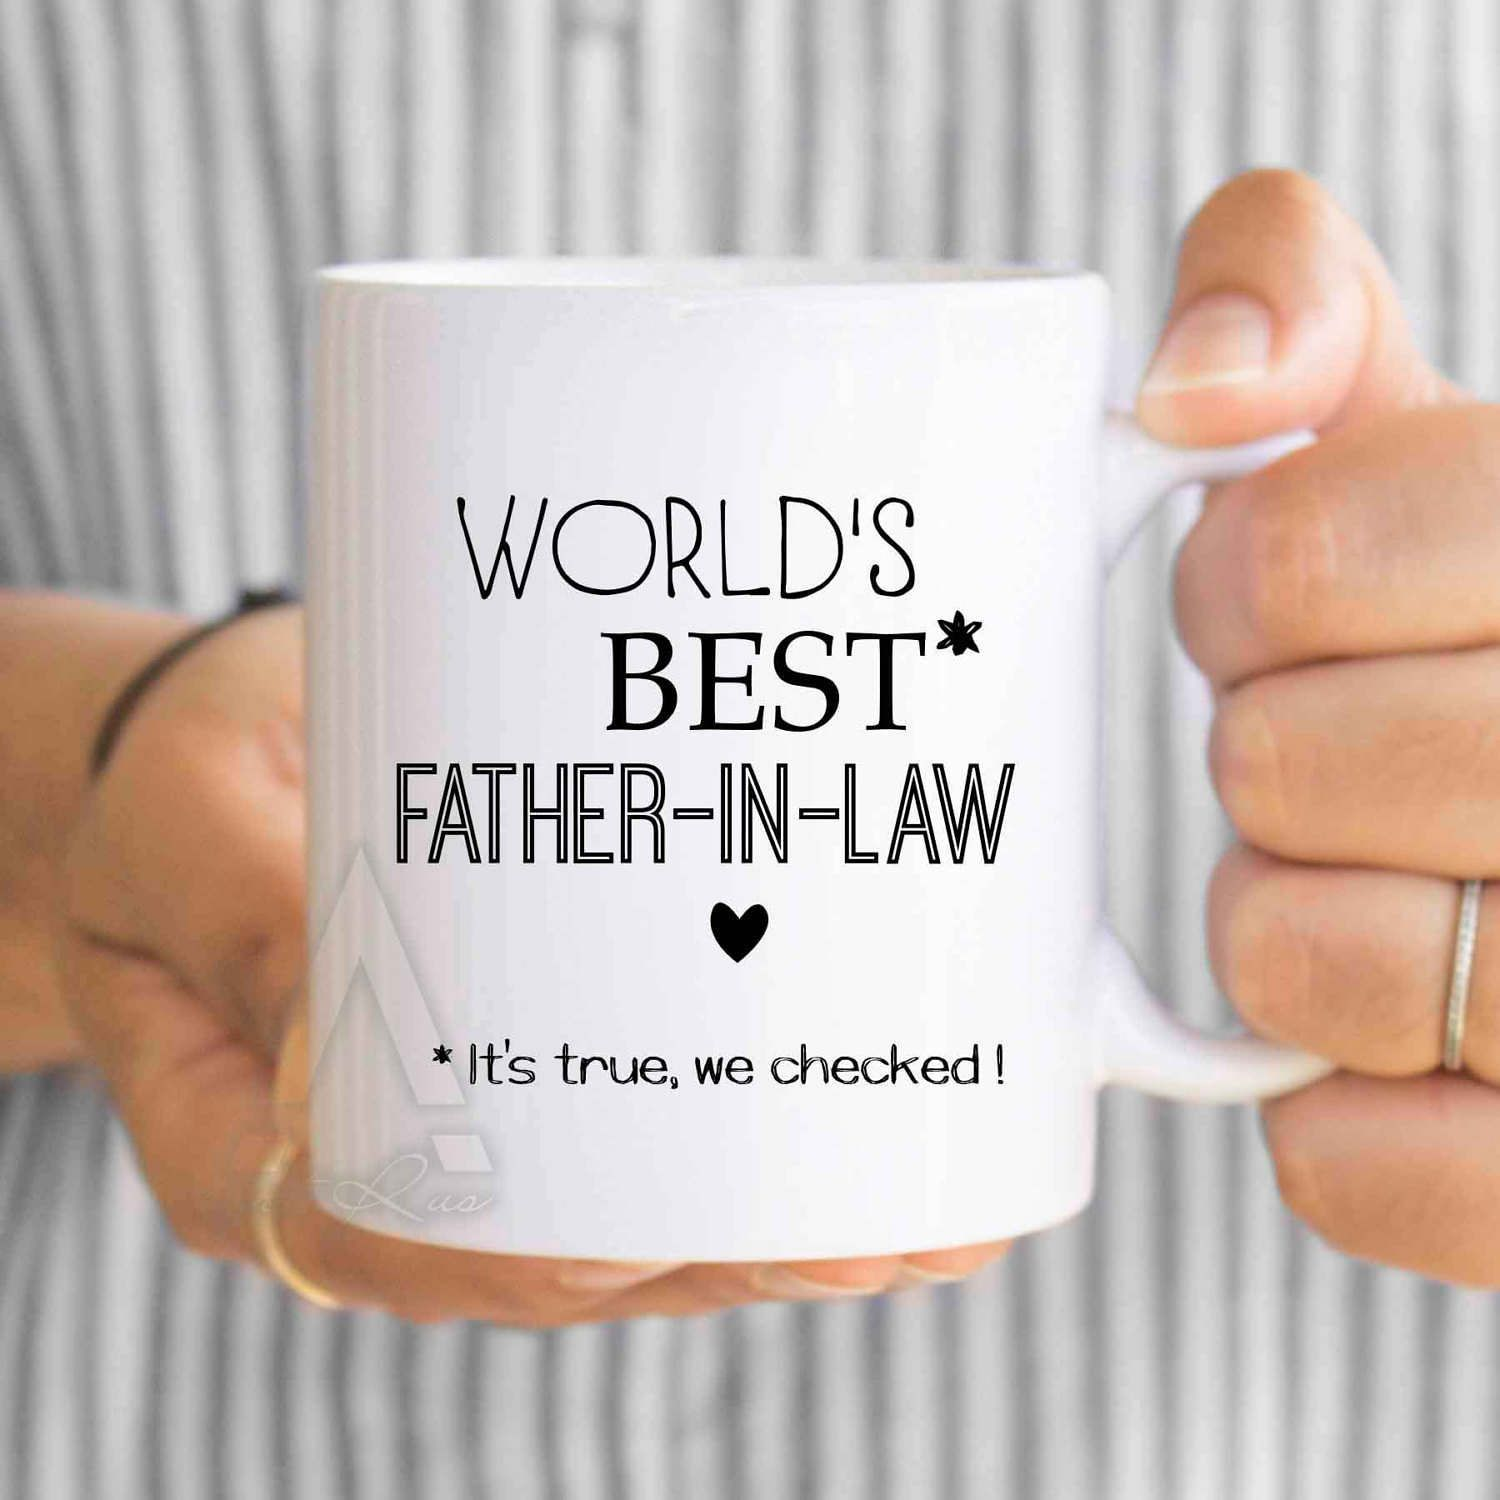 Gifts For Father In Law World S Best Father In Law Mug Father In Law Gift Fathers Day Gift Gifts For Inlaws Boyfriend Anniversary Gifts Gifts For Brother